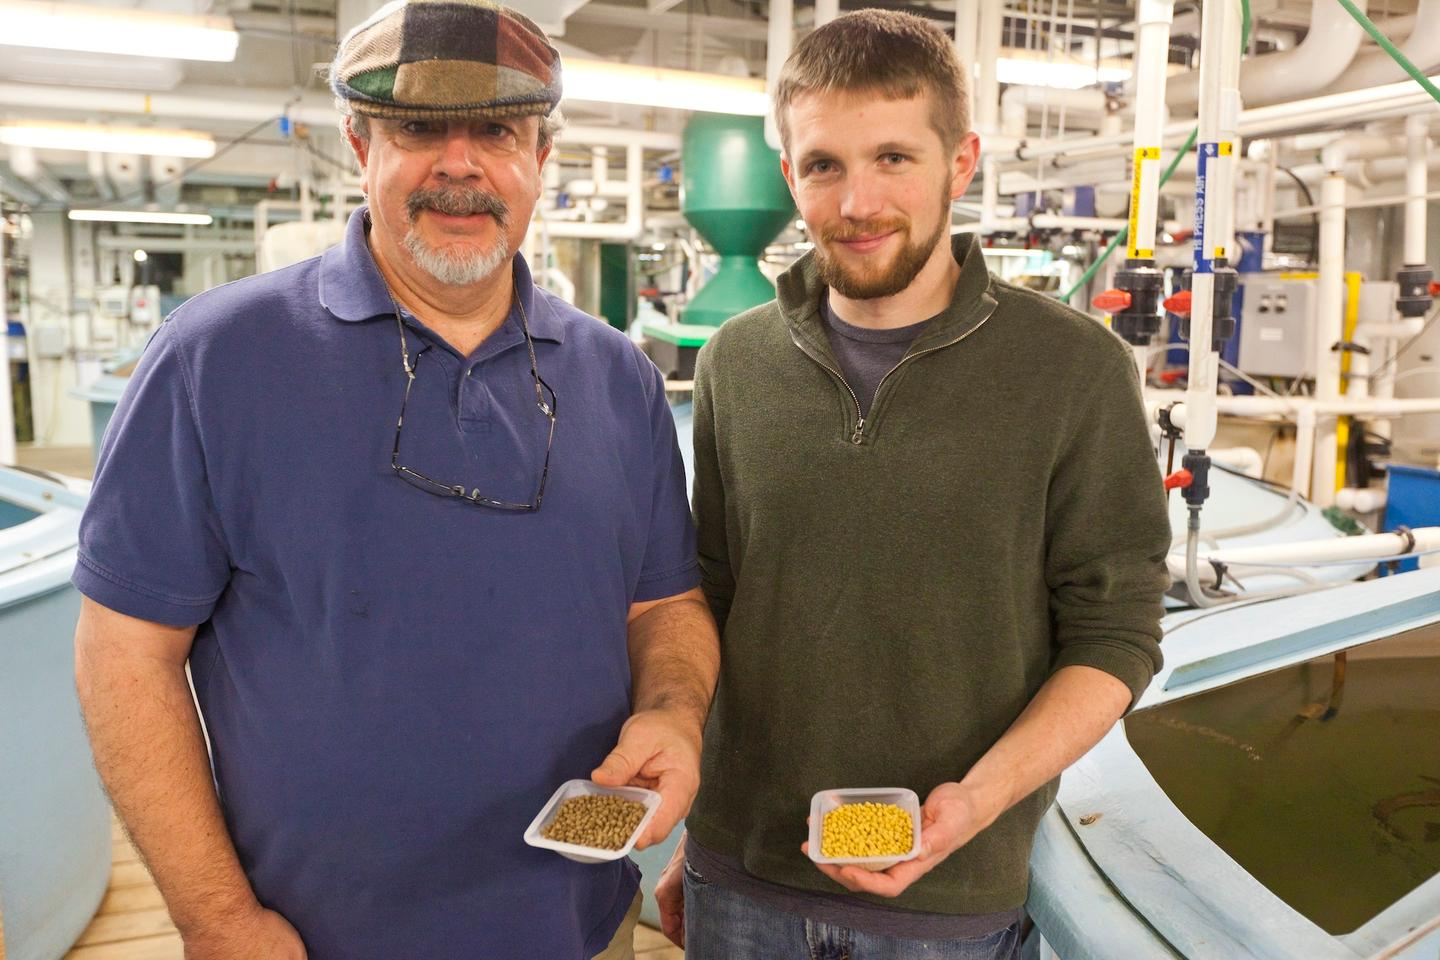 Dr. Allen Place (left) and Dr. Aaron Watson, developers of the vegetarian fish feed (Photo: University of Maryland Center for Environmental Science/Cheryl Nemazie)